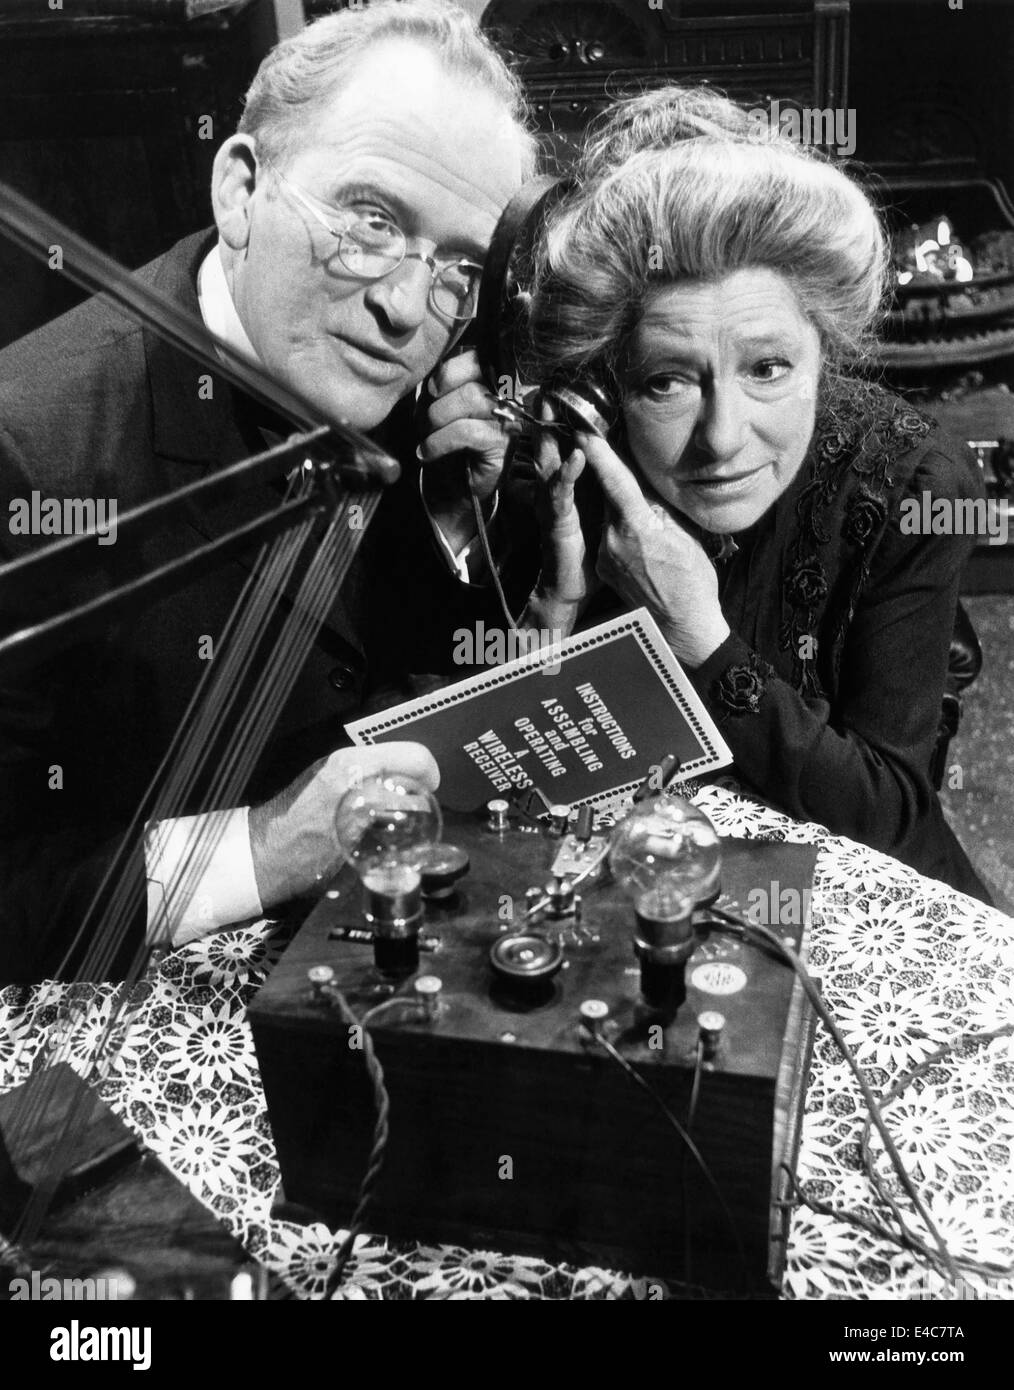 Gordon Jackson, Angela Baddeley, on-set of the British TV Series, 'Upstairs, Downstairs', 1970's - Stock Image